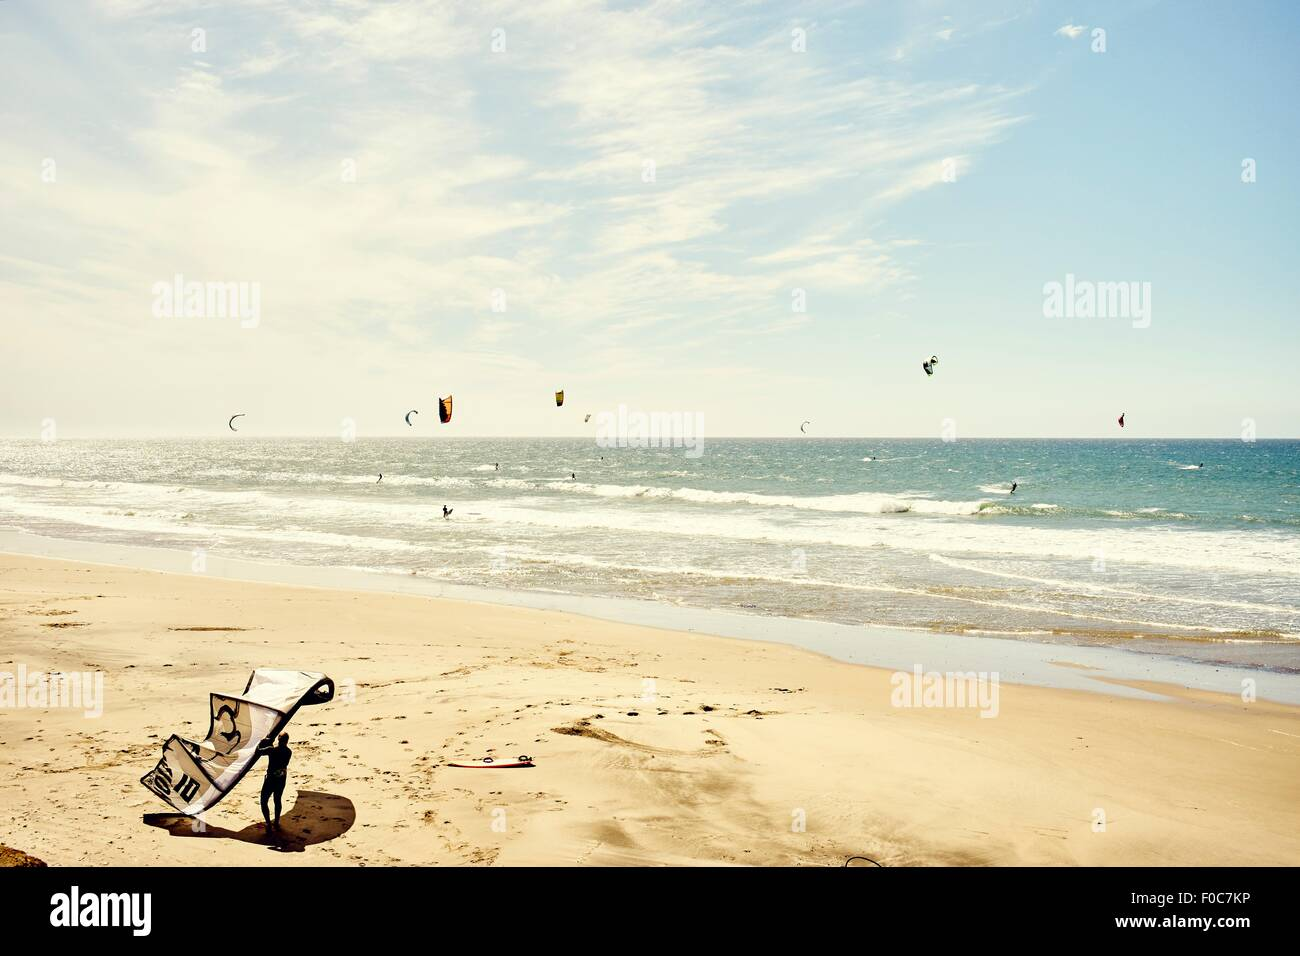 View of kitesurfers, Pacifica, California, USA - Stock Image